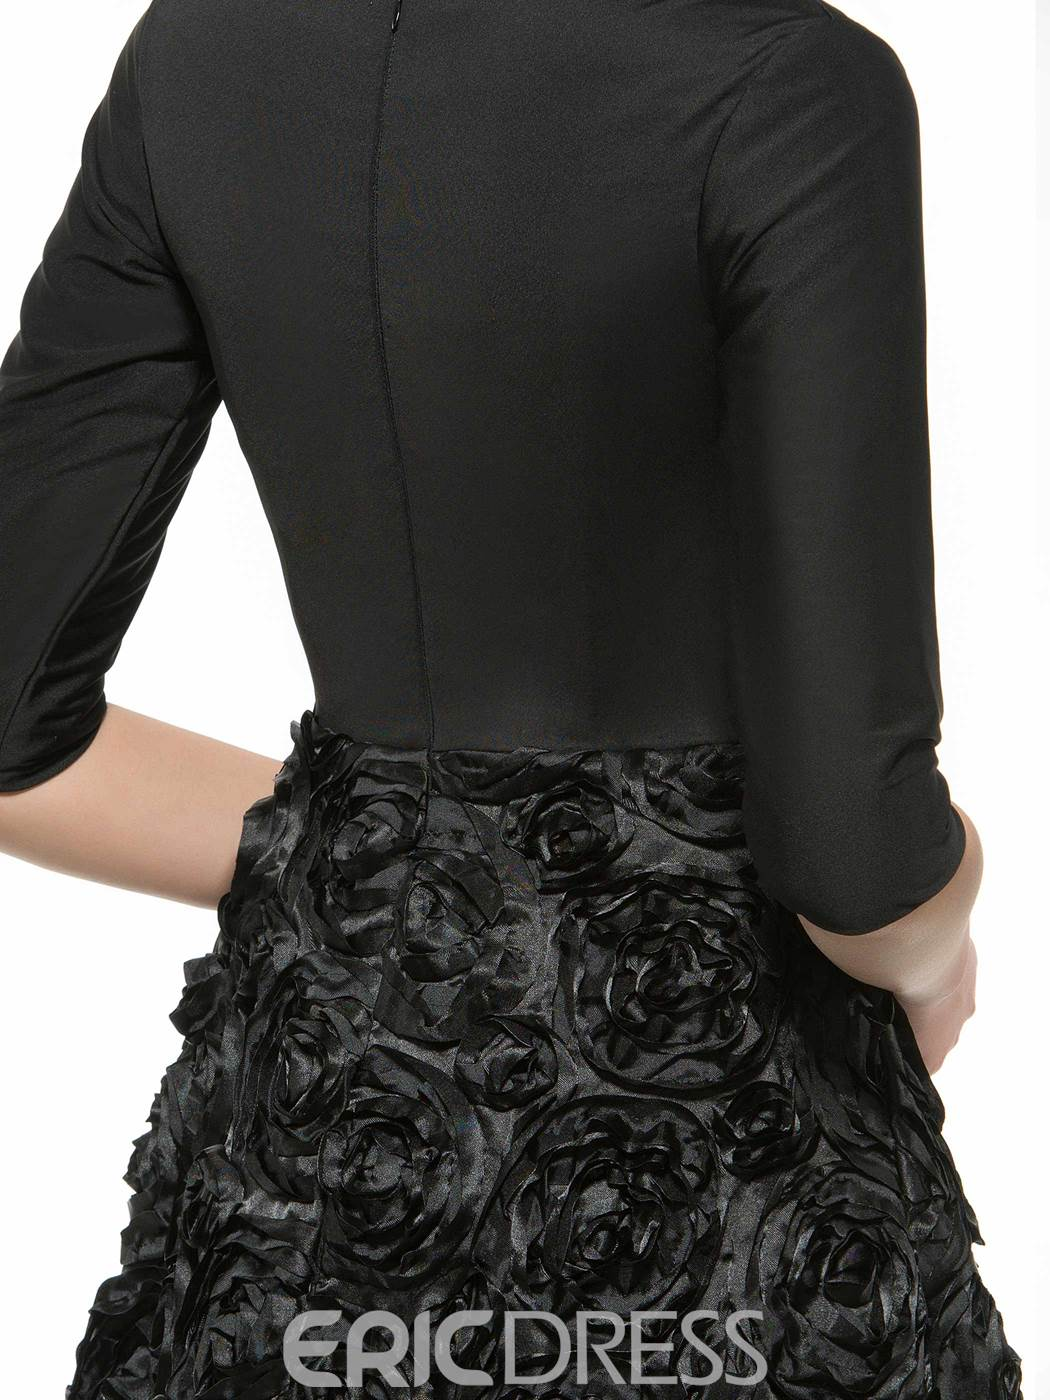 Ericdress High Quality A Line Short Lace Mother Of The Bride Dress